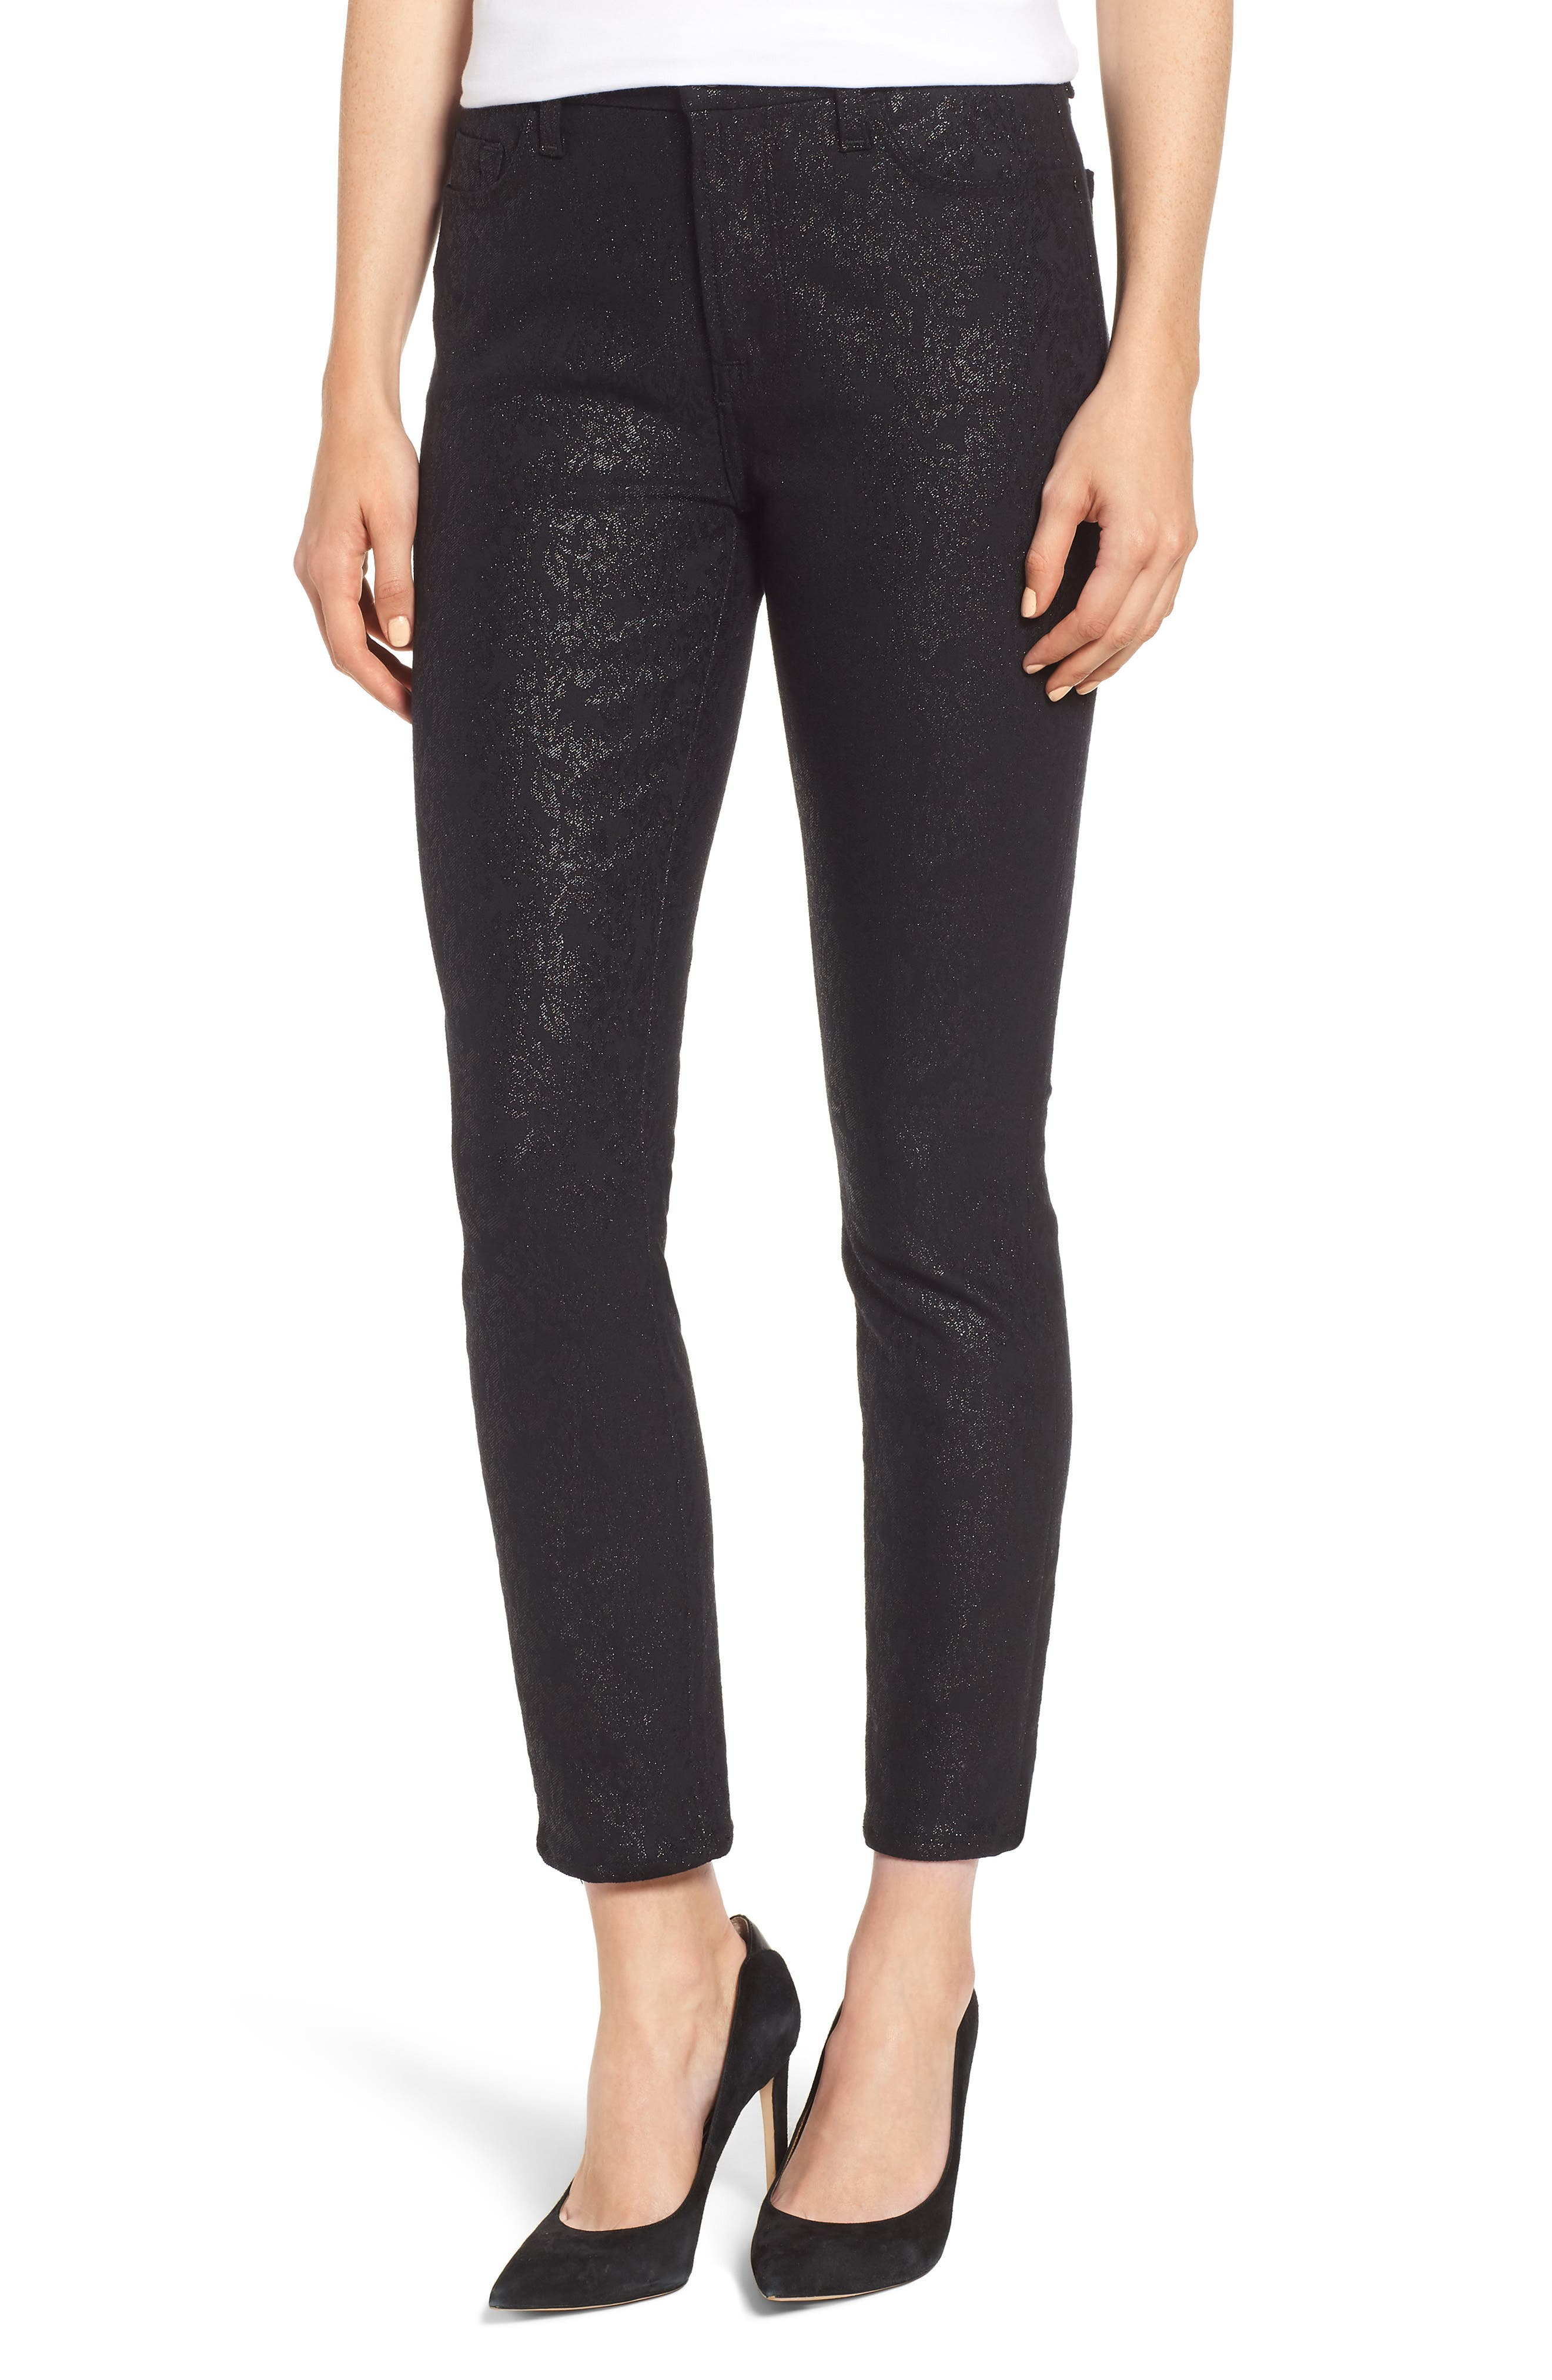 JEN7 BY 7 FOR ALL MANKIND, Floral Metallic Ankle Skinny Jeans, Main thumbnail 1, color, BLACK